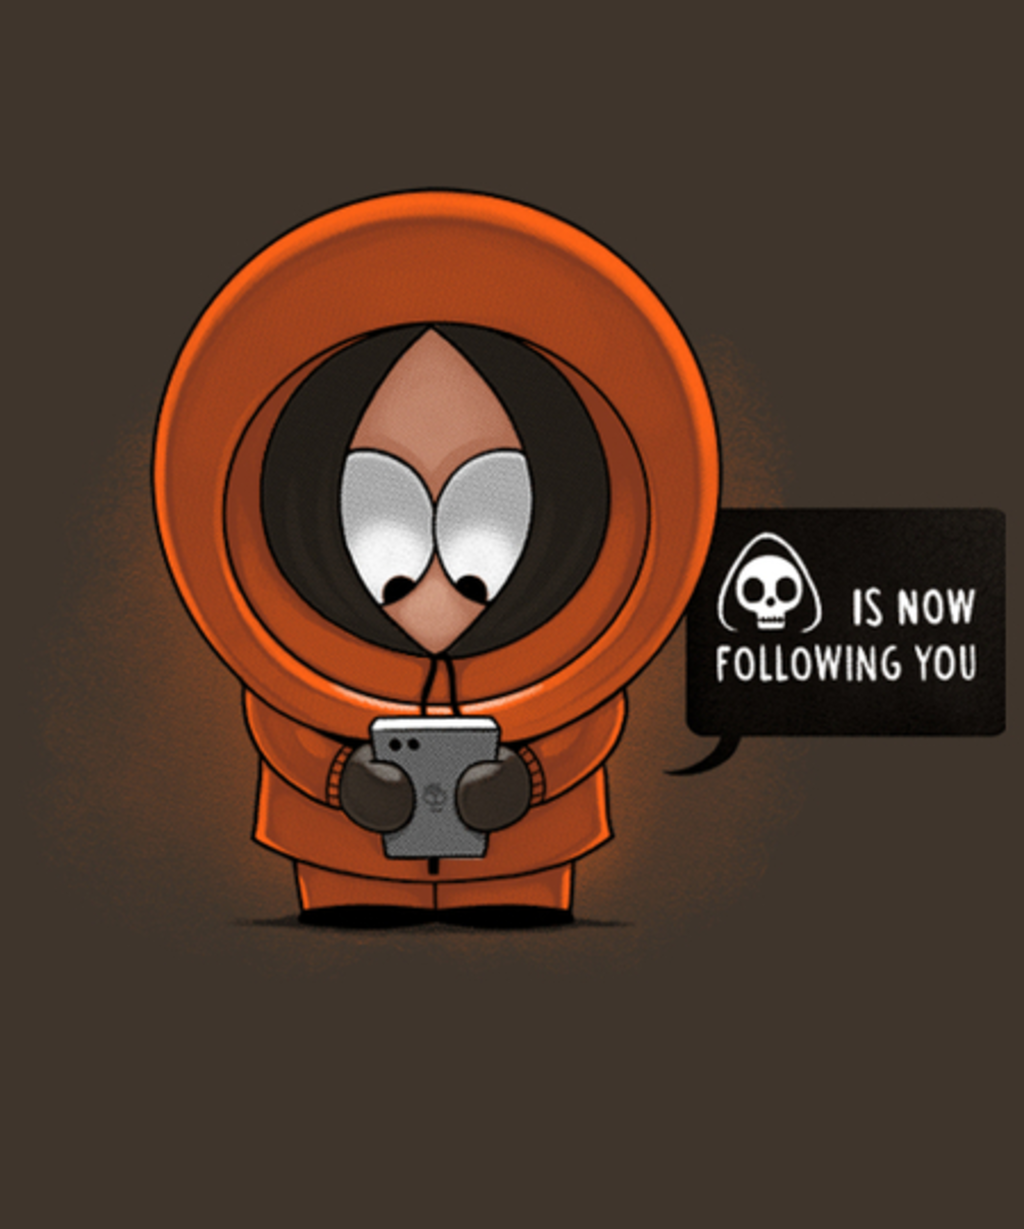 Qwertee: New Follower